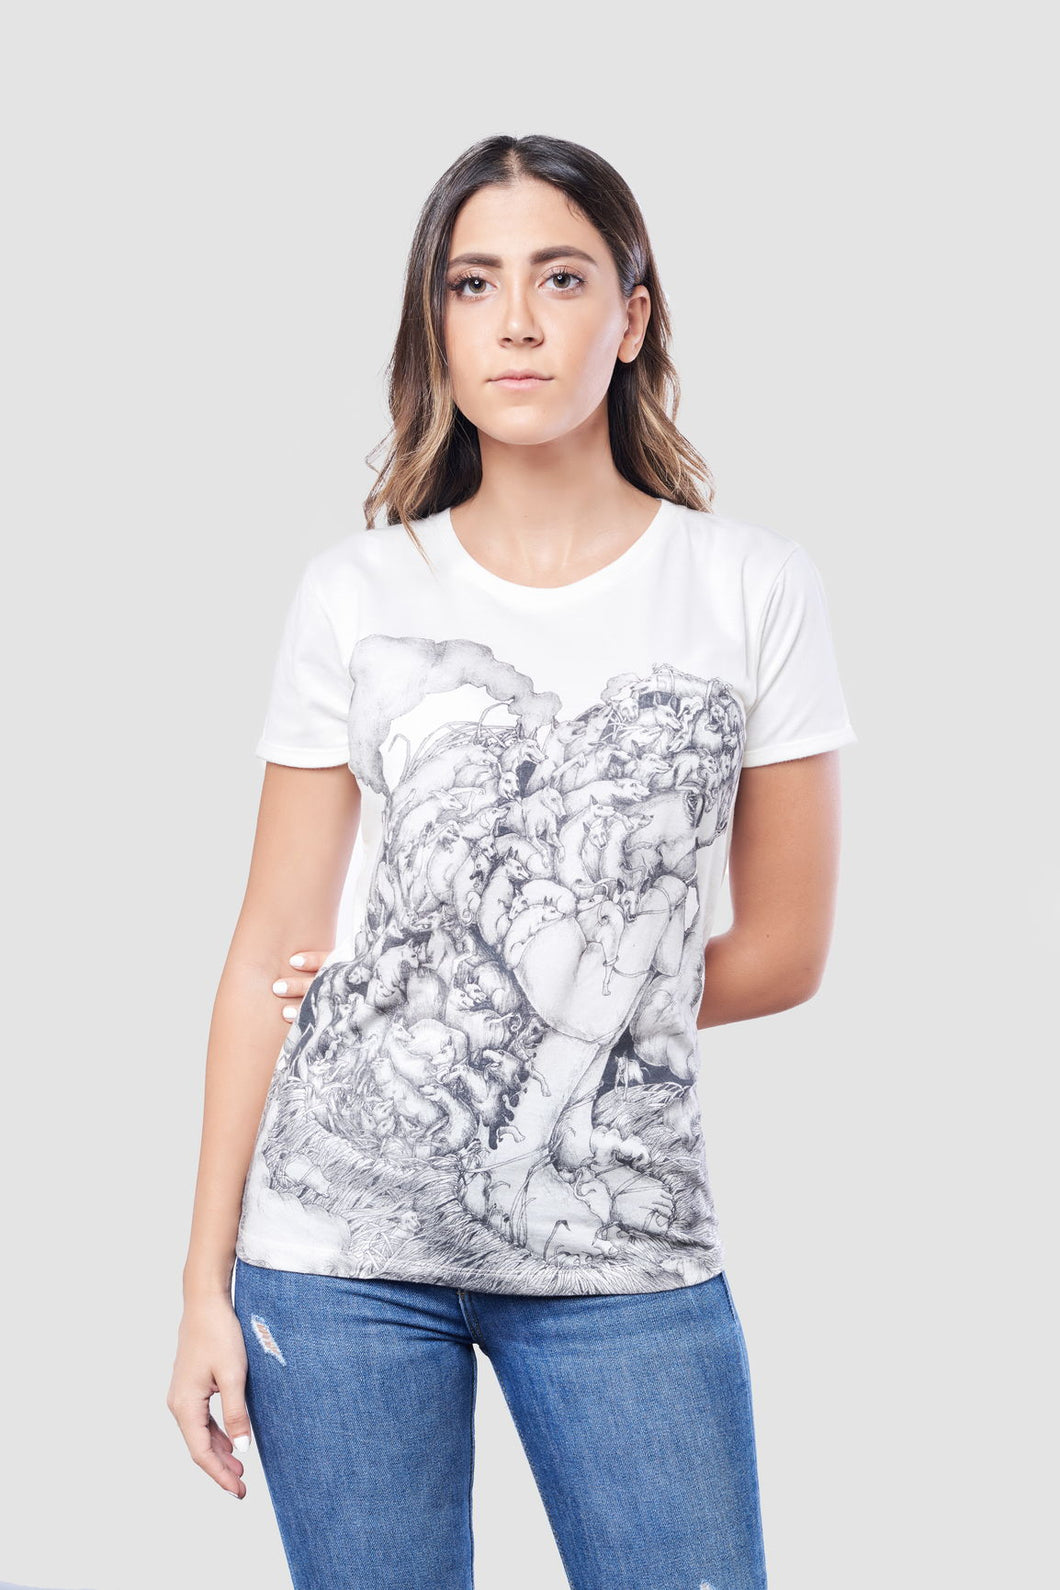 Skeletons In Your Closet T-Shirt for Women, 100% Organic Egyptian Cotton